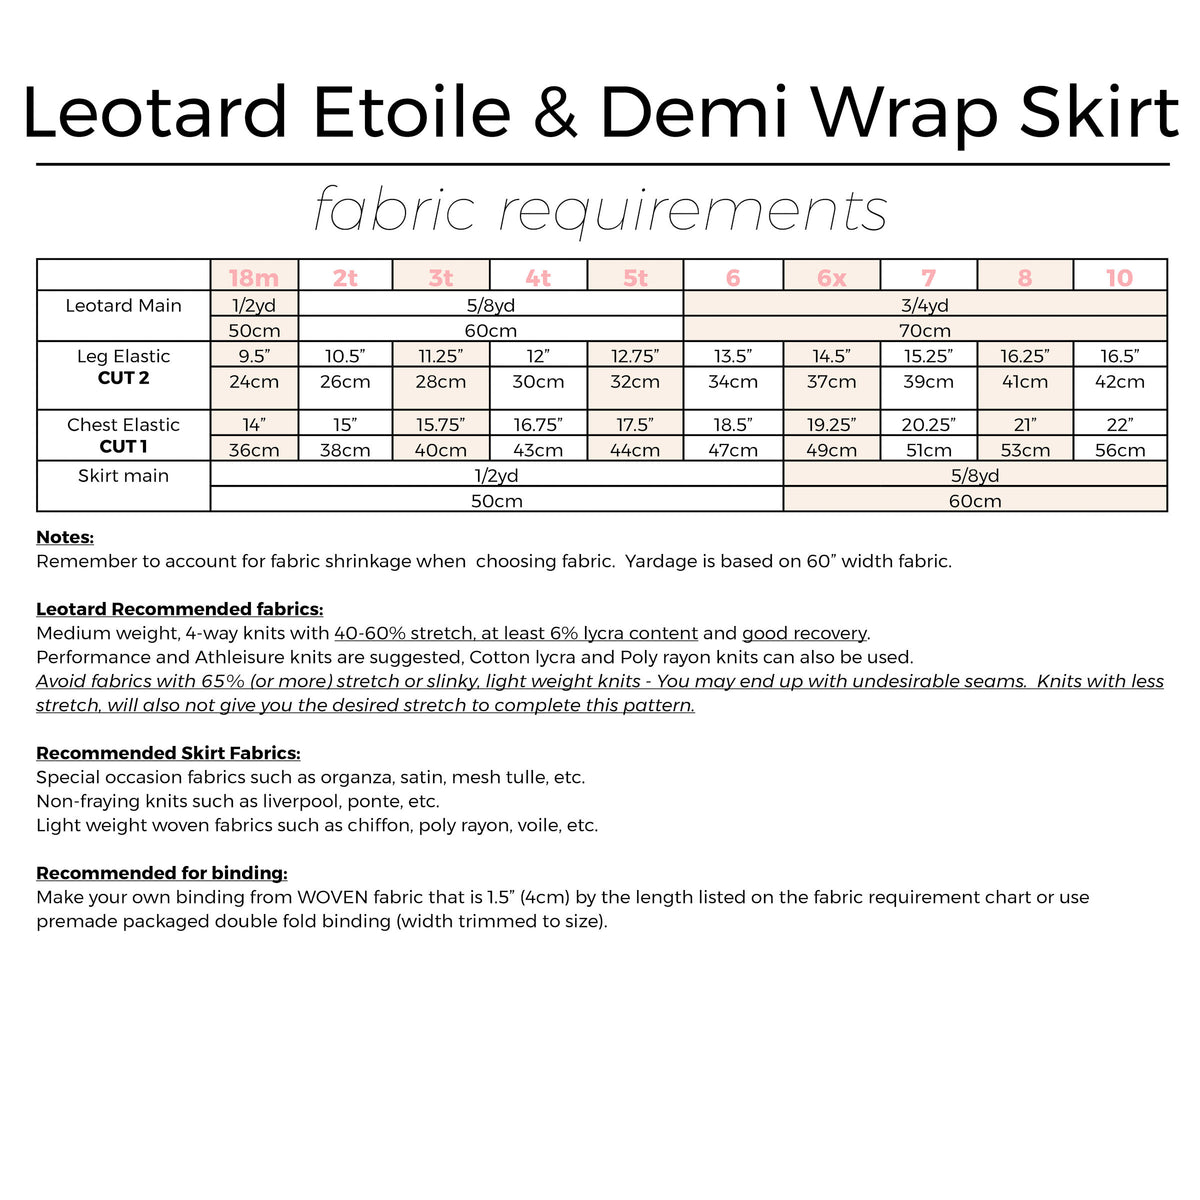 Leotard Etoile and Demi wrap skirt